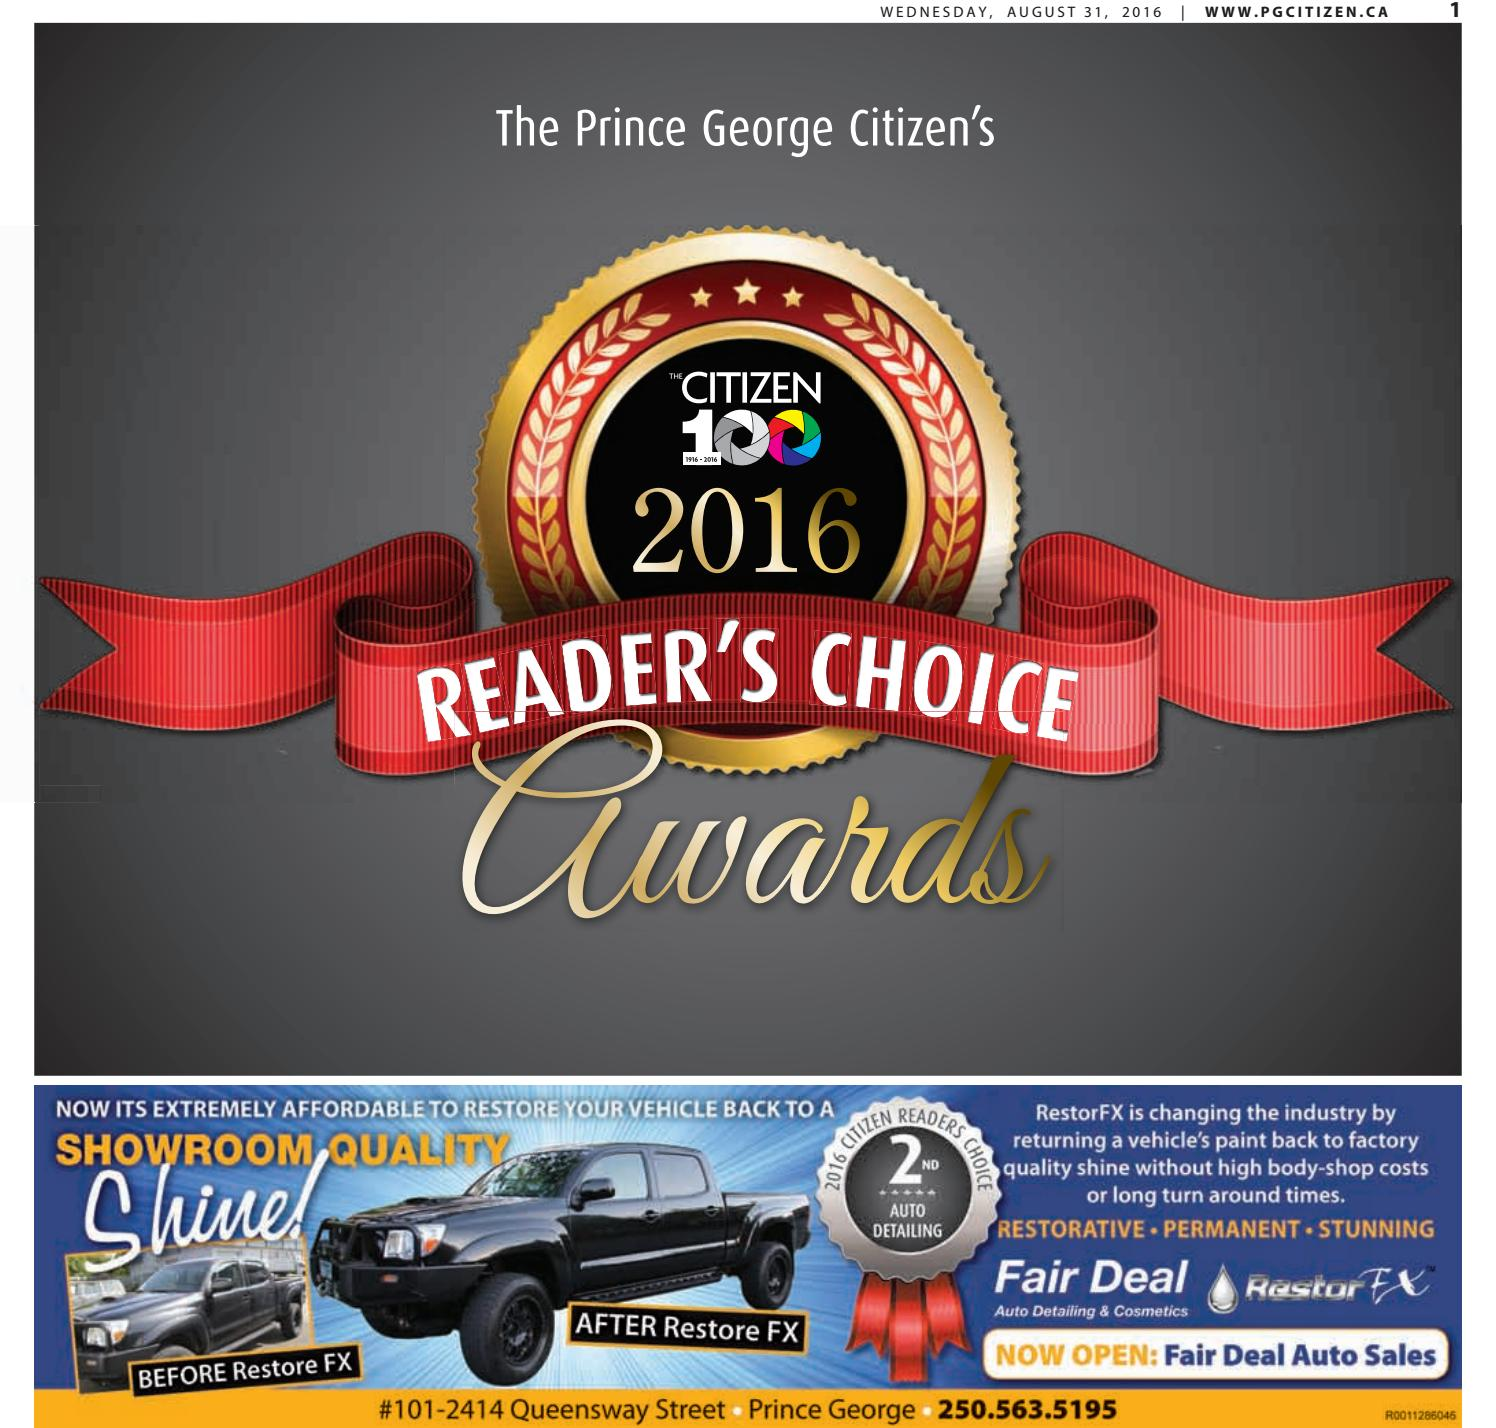 Prince George Citizen Readers Choice 2016 by Prince George Citizen